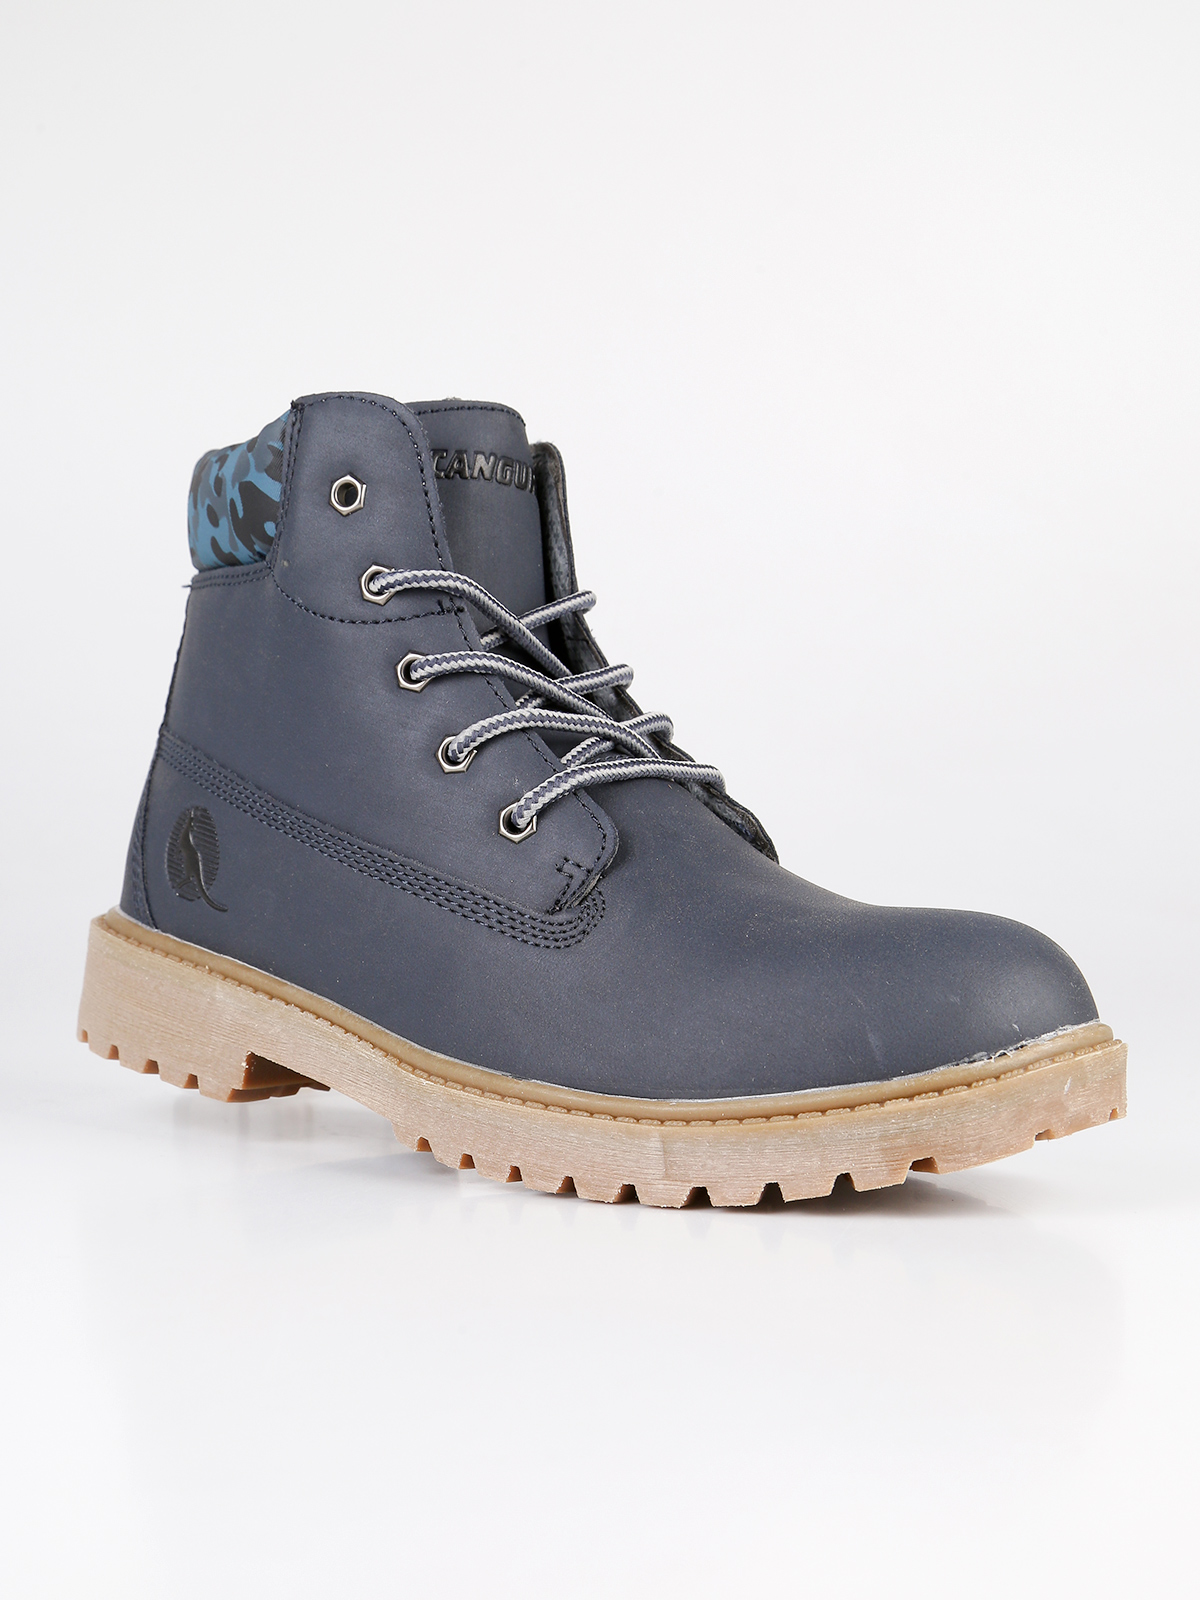 Boots Blue Lace-up And Zipper